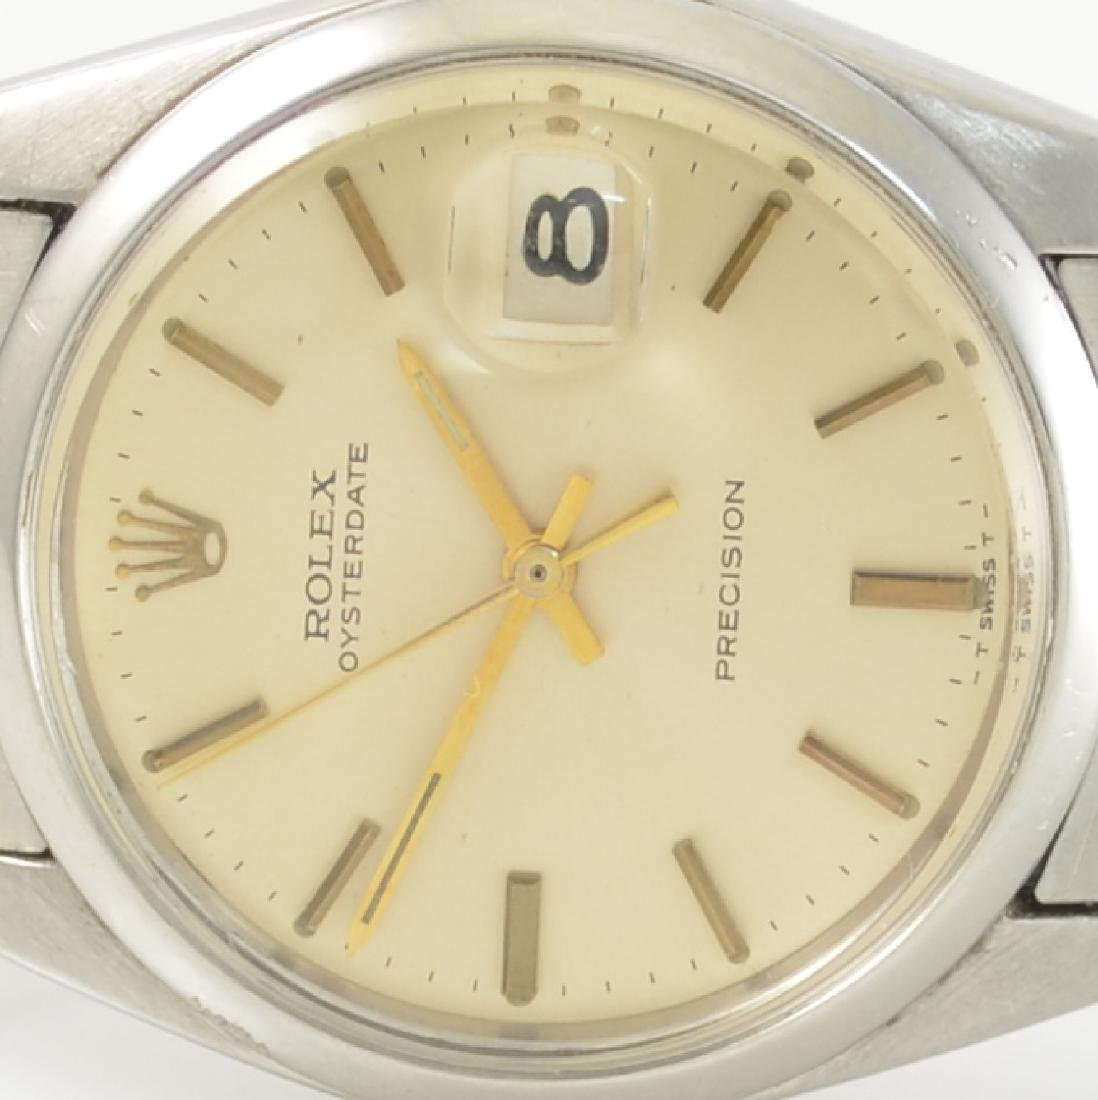 ROLEX Precision reference 6694 gents wristwatch - 3